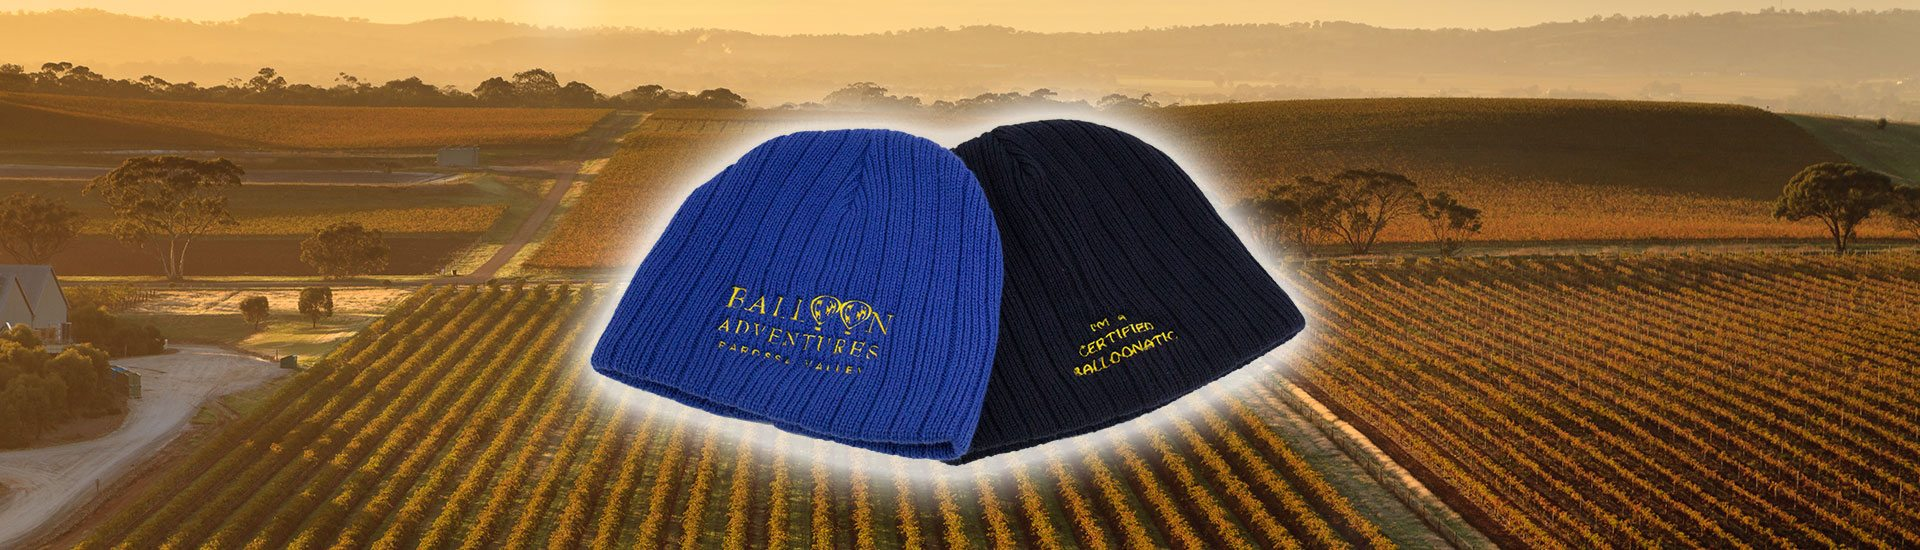 balloon-adventures-flights-over-the-barossa-valley-merchandise-black-and-blue-beanie